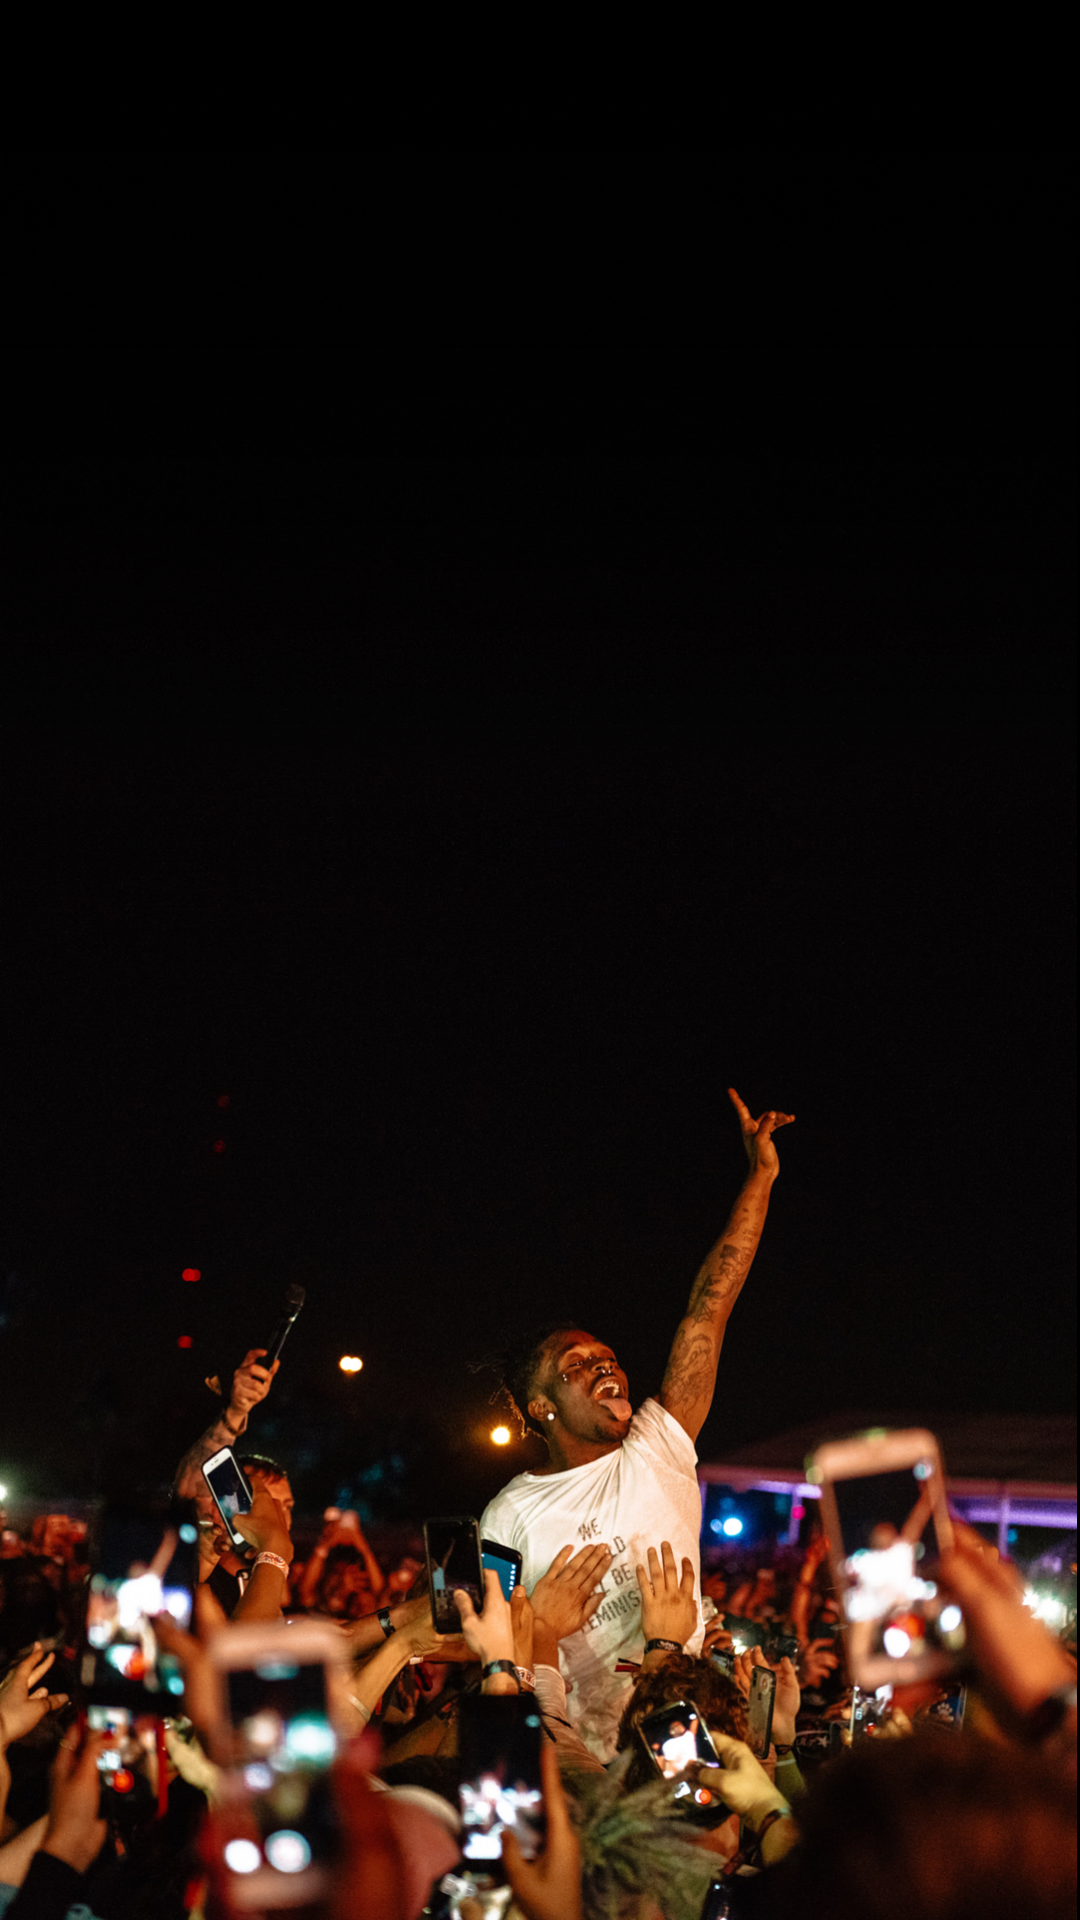 Ive made another Lil Uzi Vert wallpaper for phones [1080x1920 1080x1920